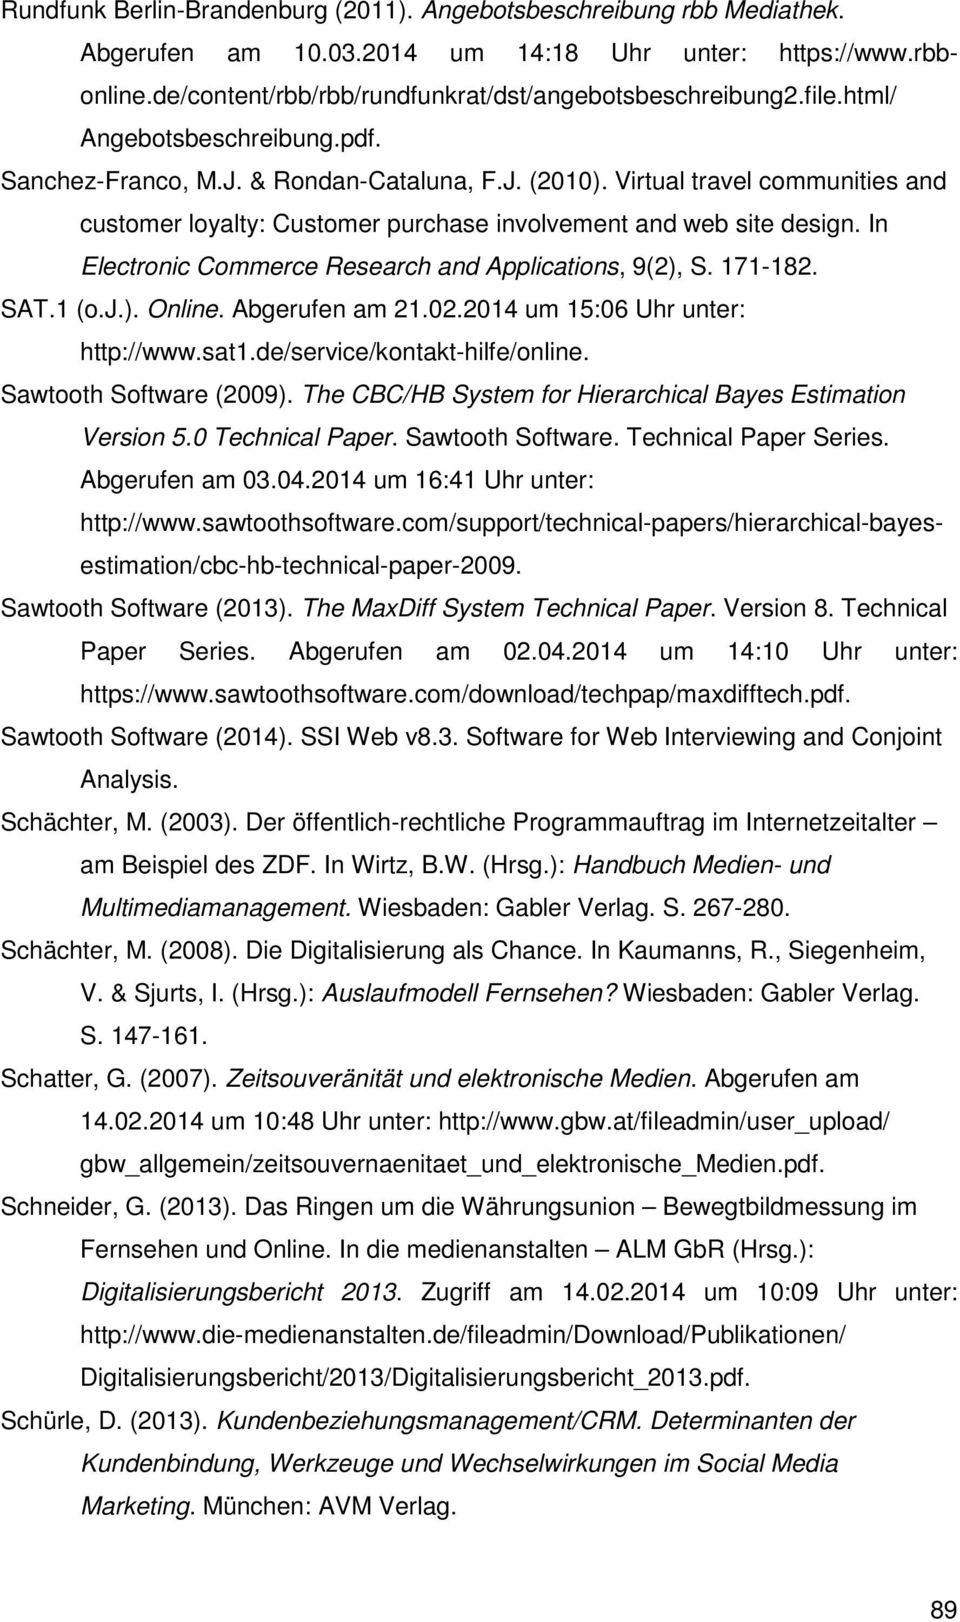 In Electronic Commerce Research and Applications, 9(2), S. 171-182. SAT.1 (o.j.). Online. Abgerufen am 21.02.2014 um 15:06 Uhr unter: http://www.sat1.de/service/kontakt-hilfe/online.